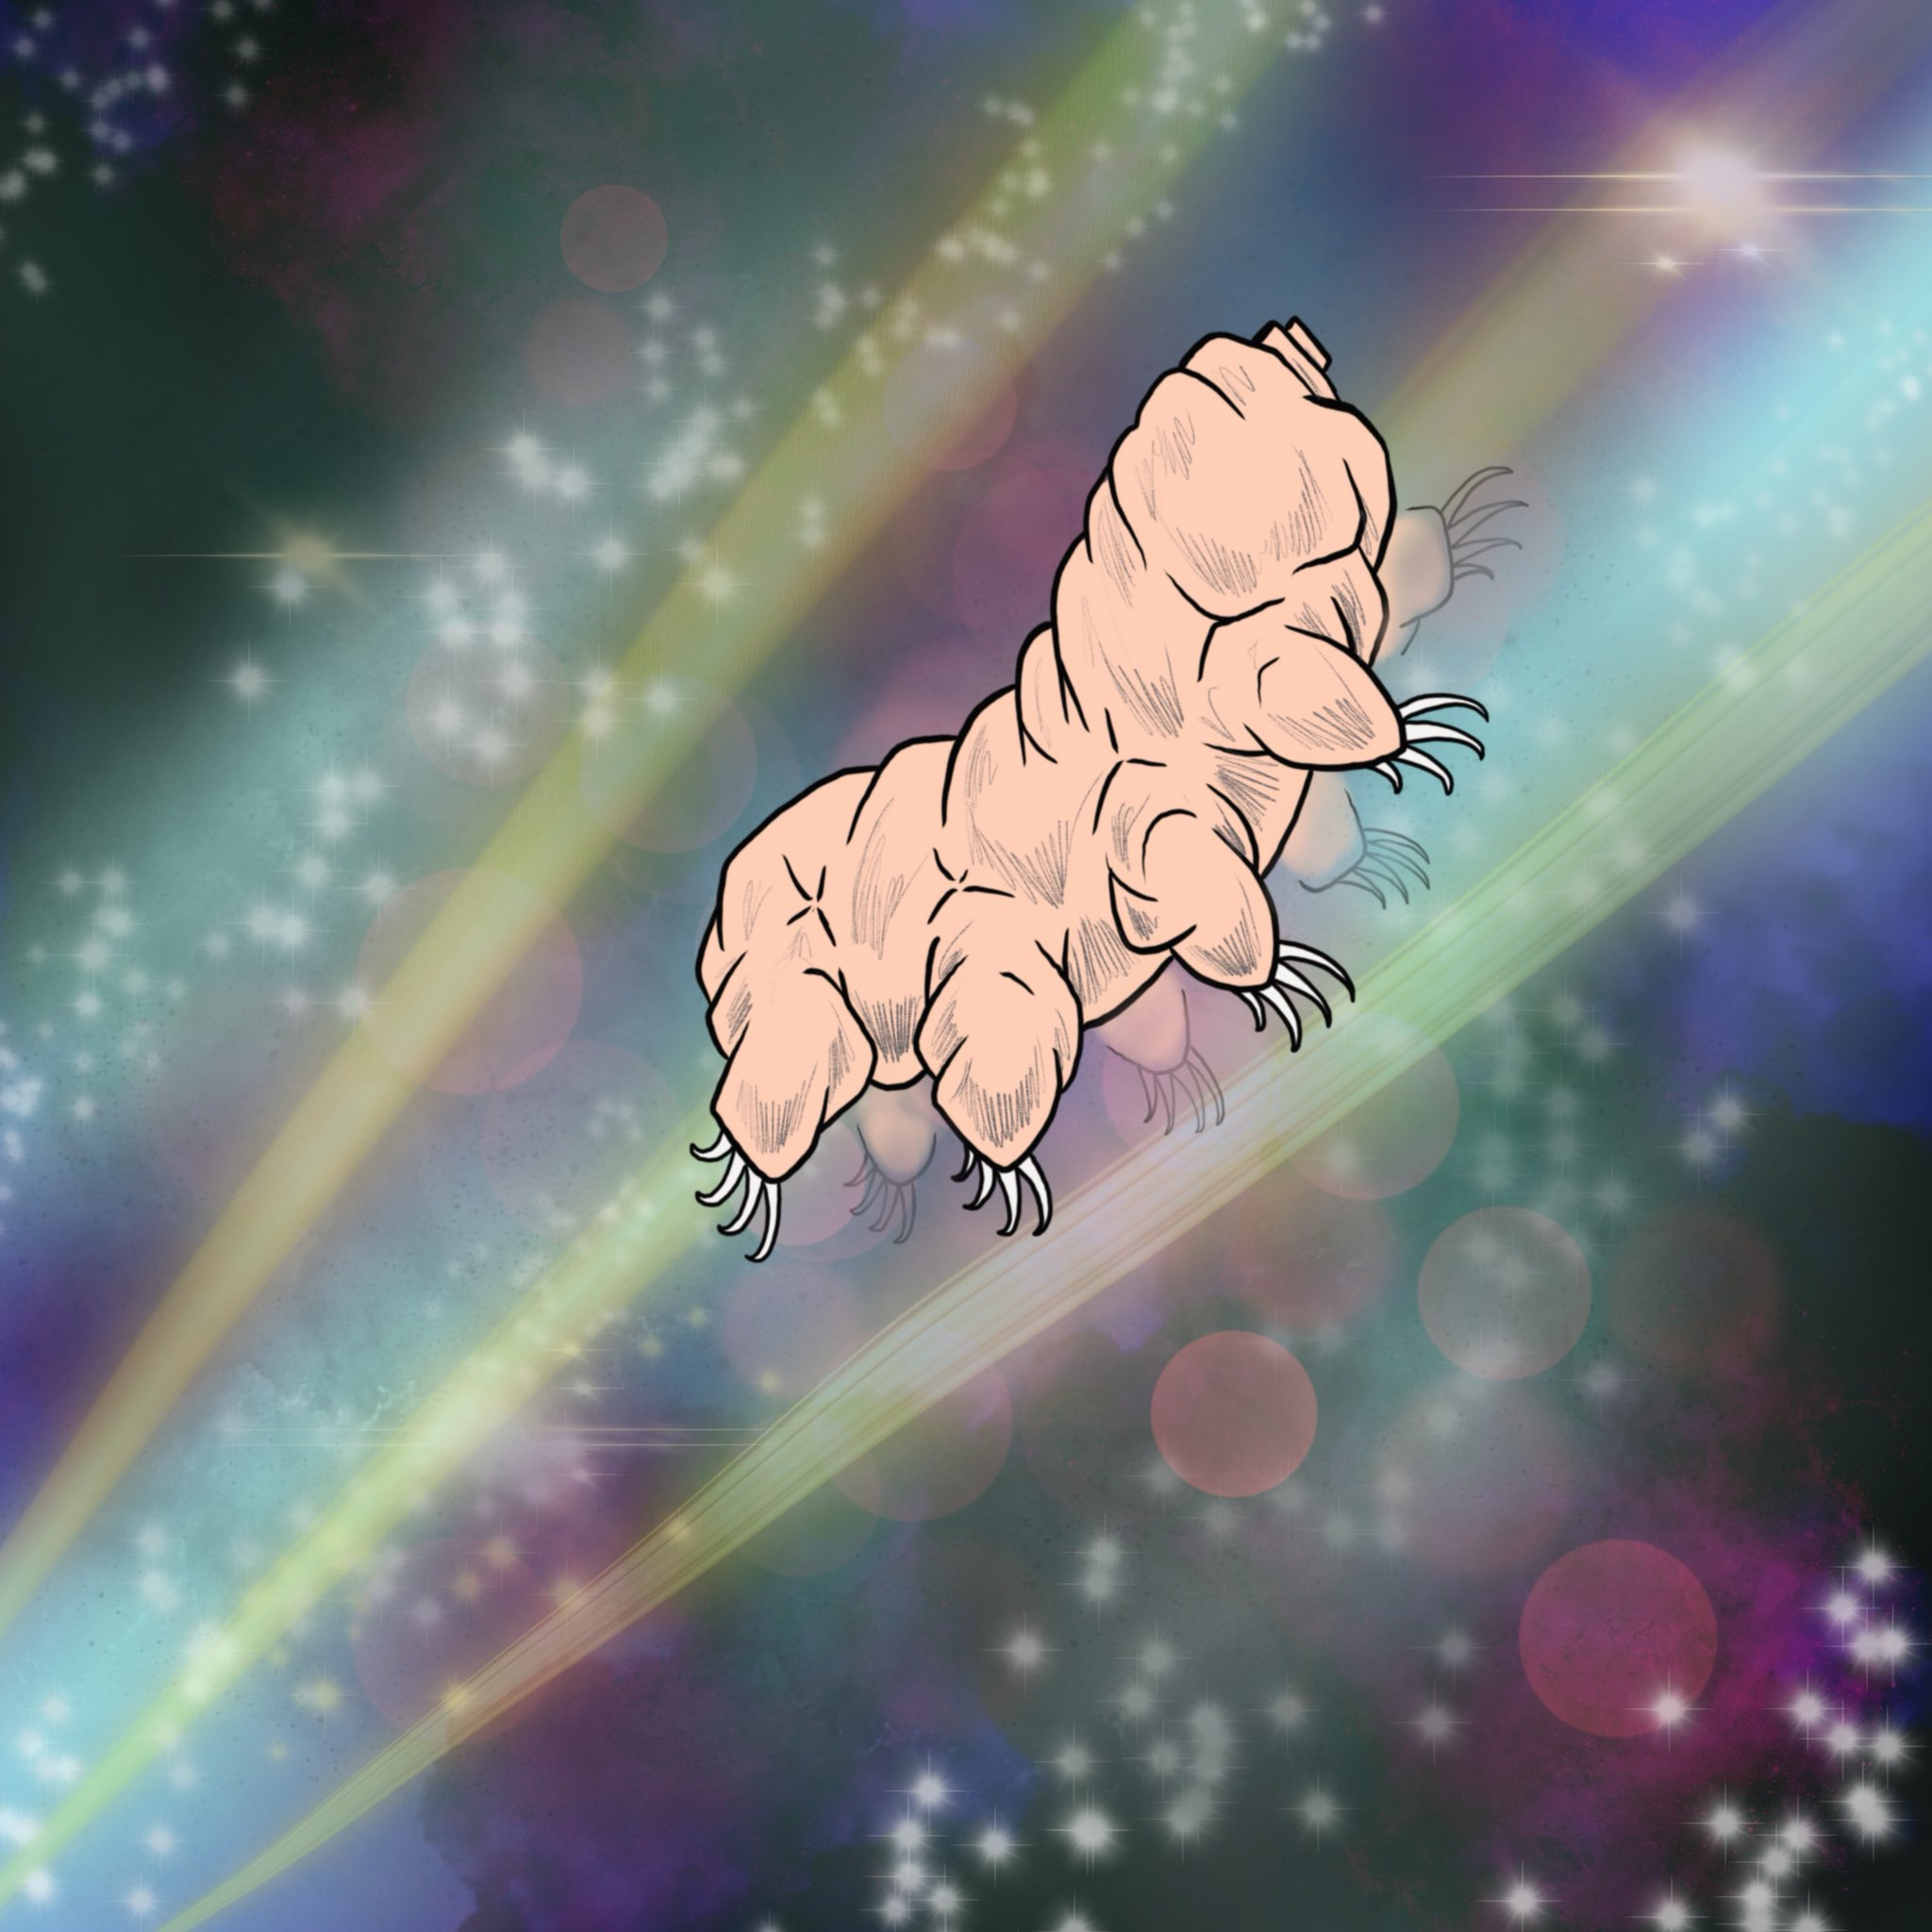 Art of Tardigrade floating in an ethereal background